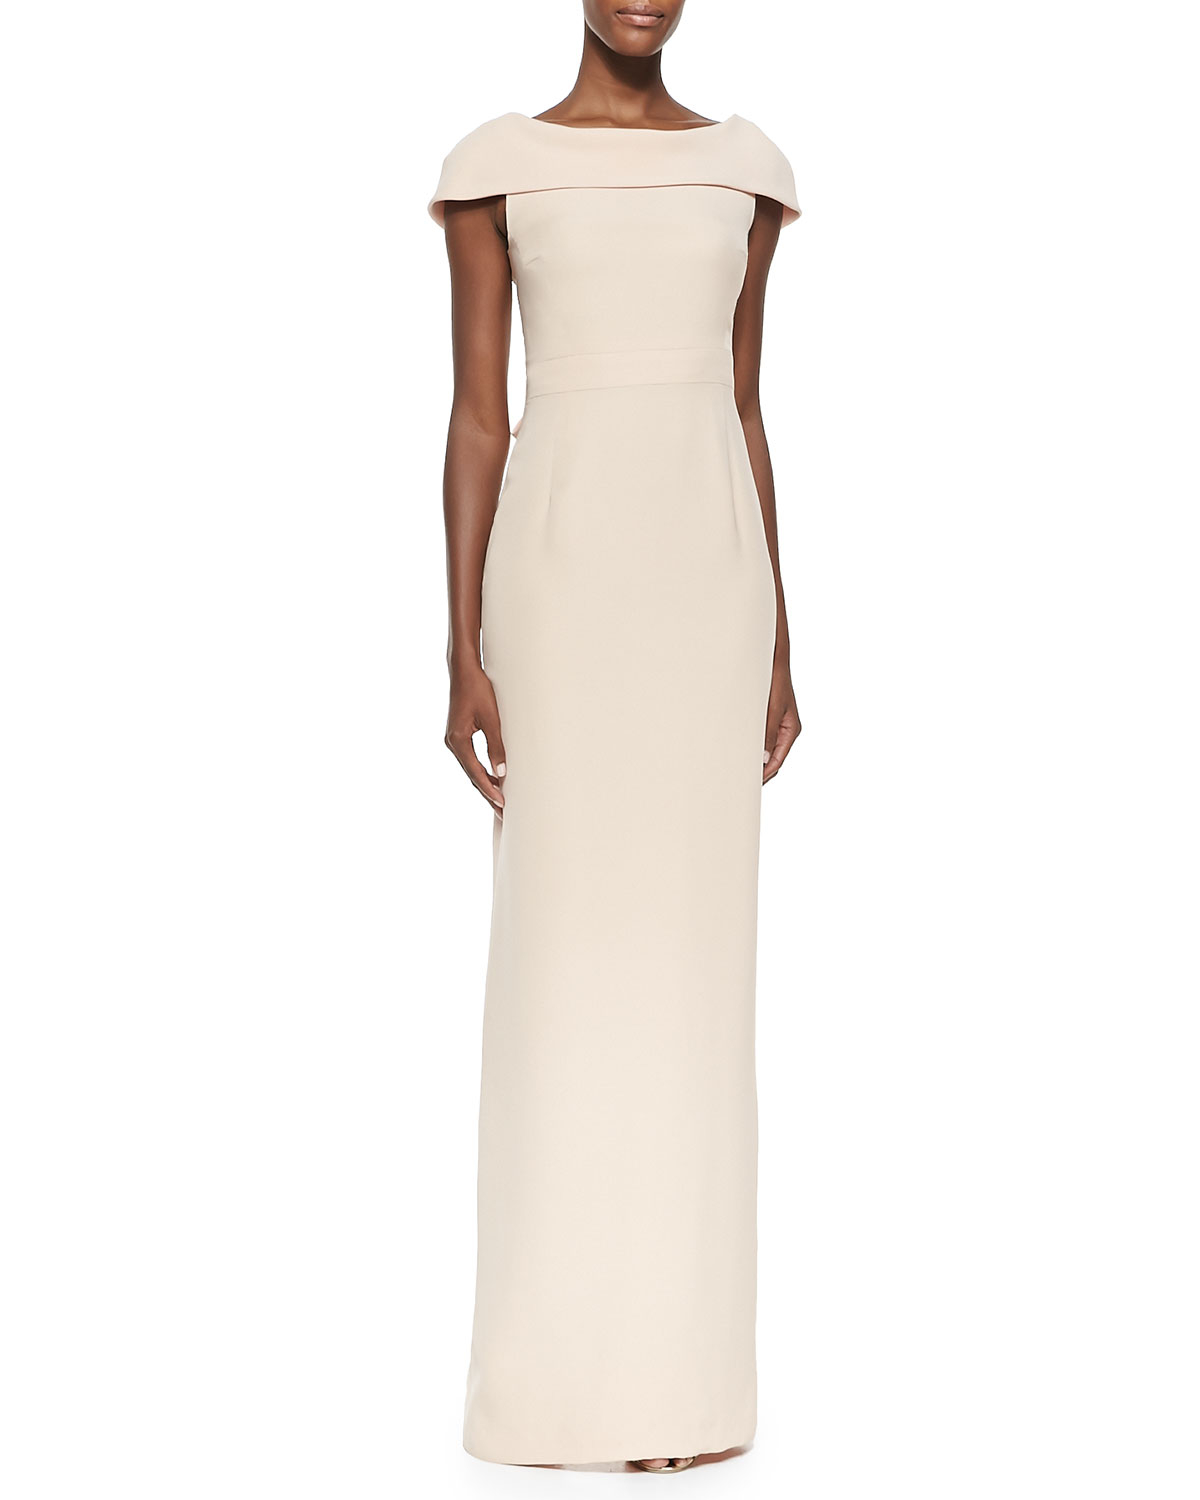 Lyst - Raoul Bridget Caped Silk Gown in Pink